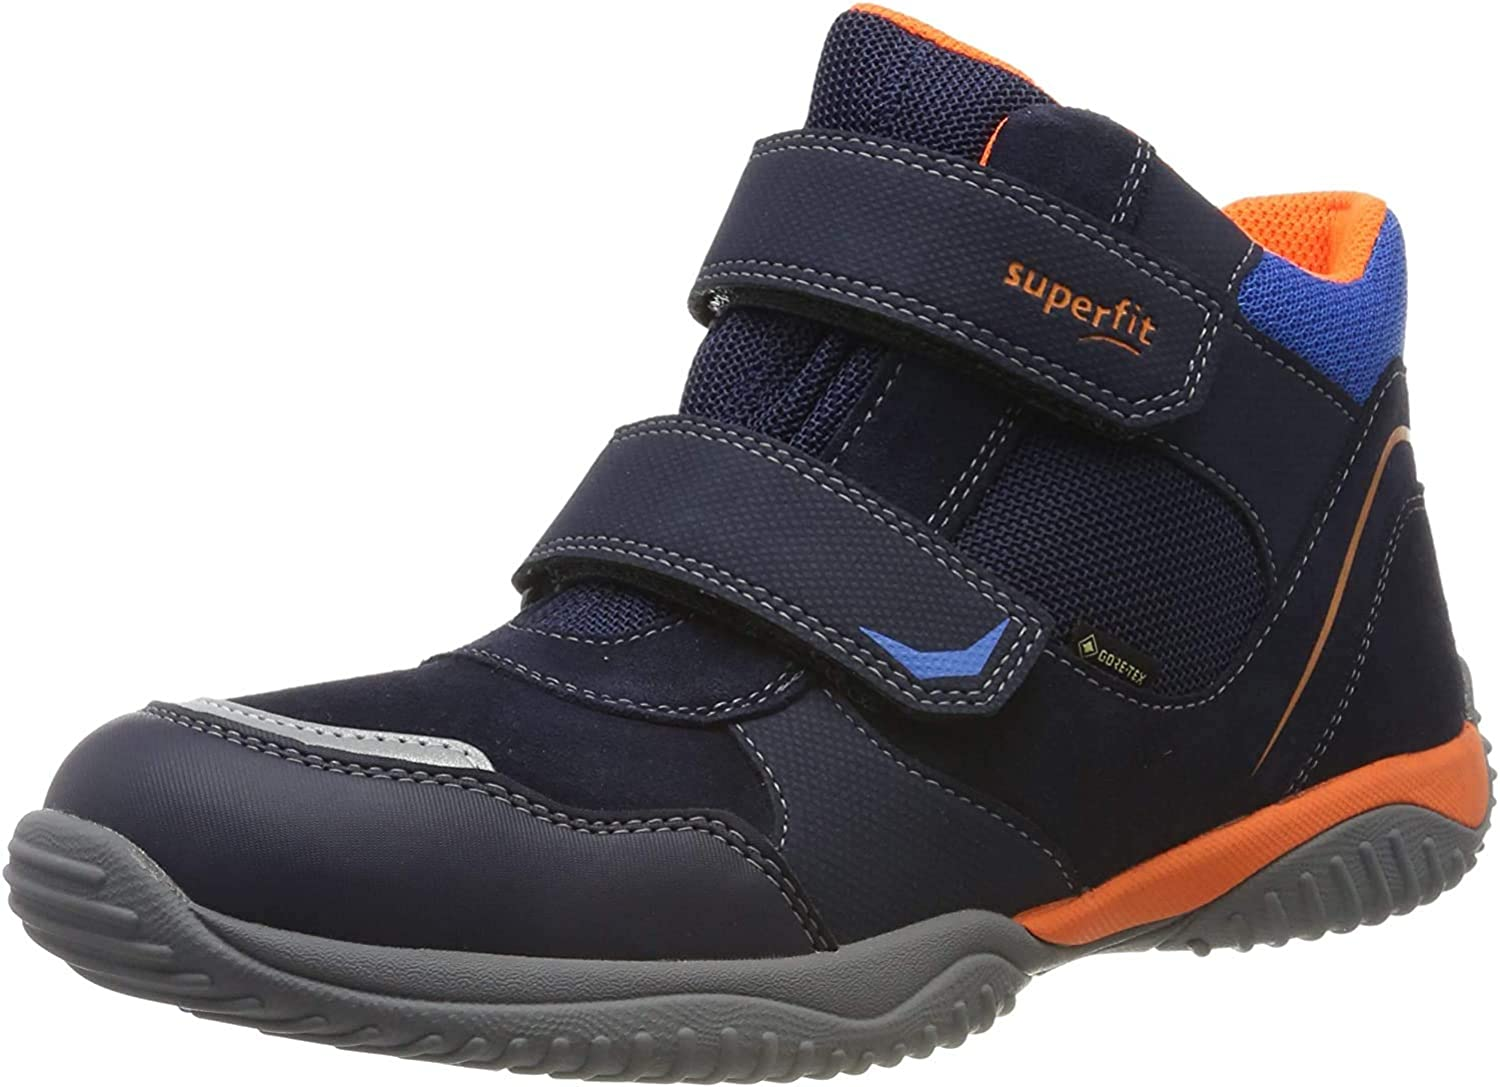 Superfit Storm Gore Tex 509385 boys high trainers.: Amazon